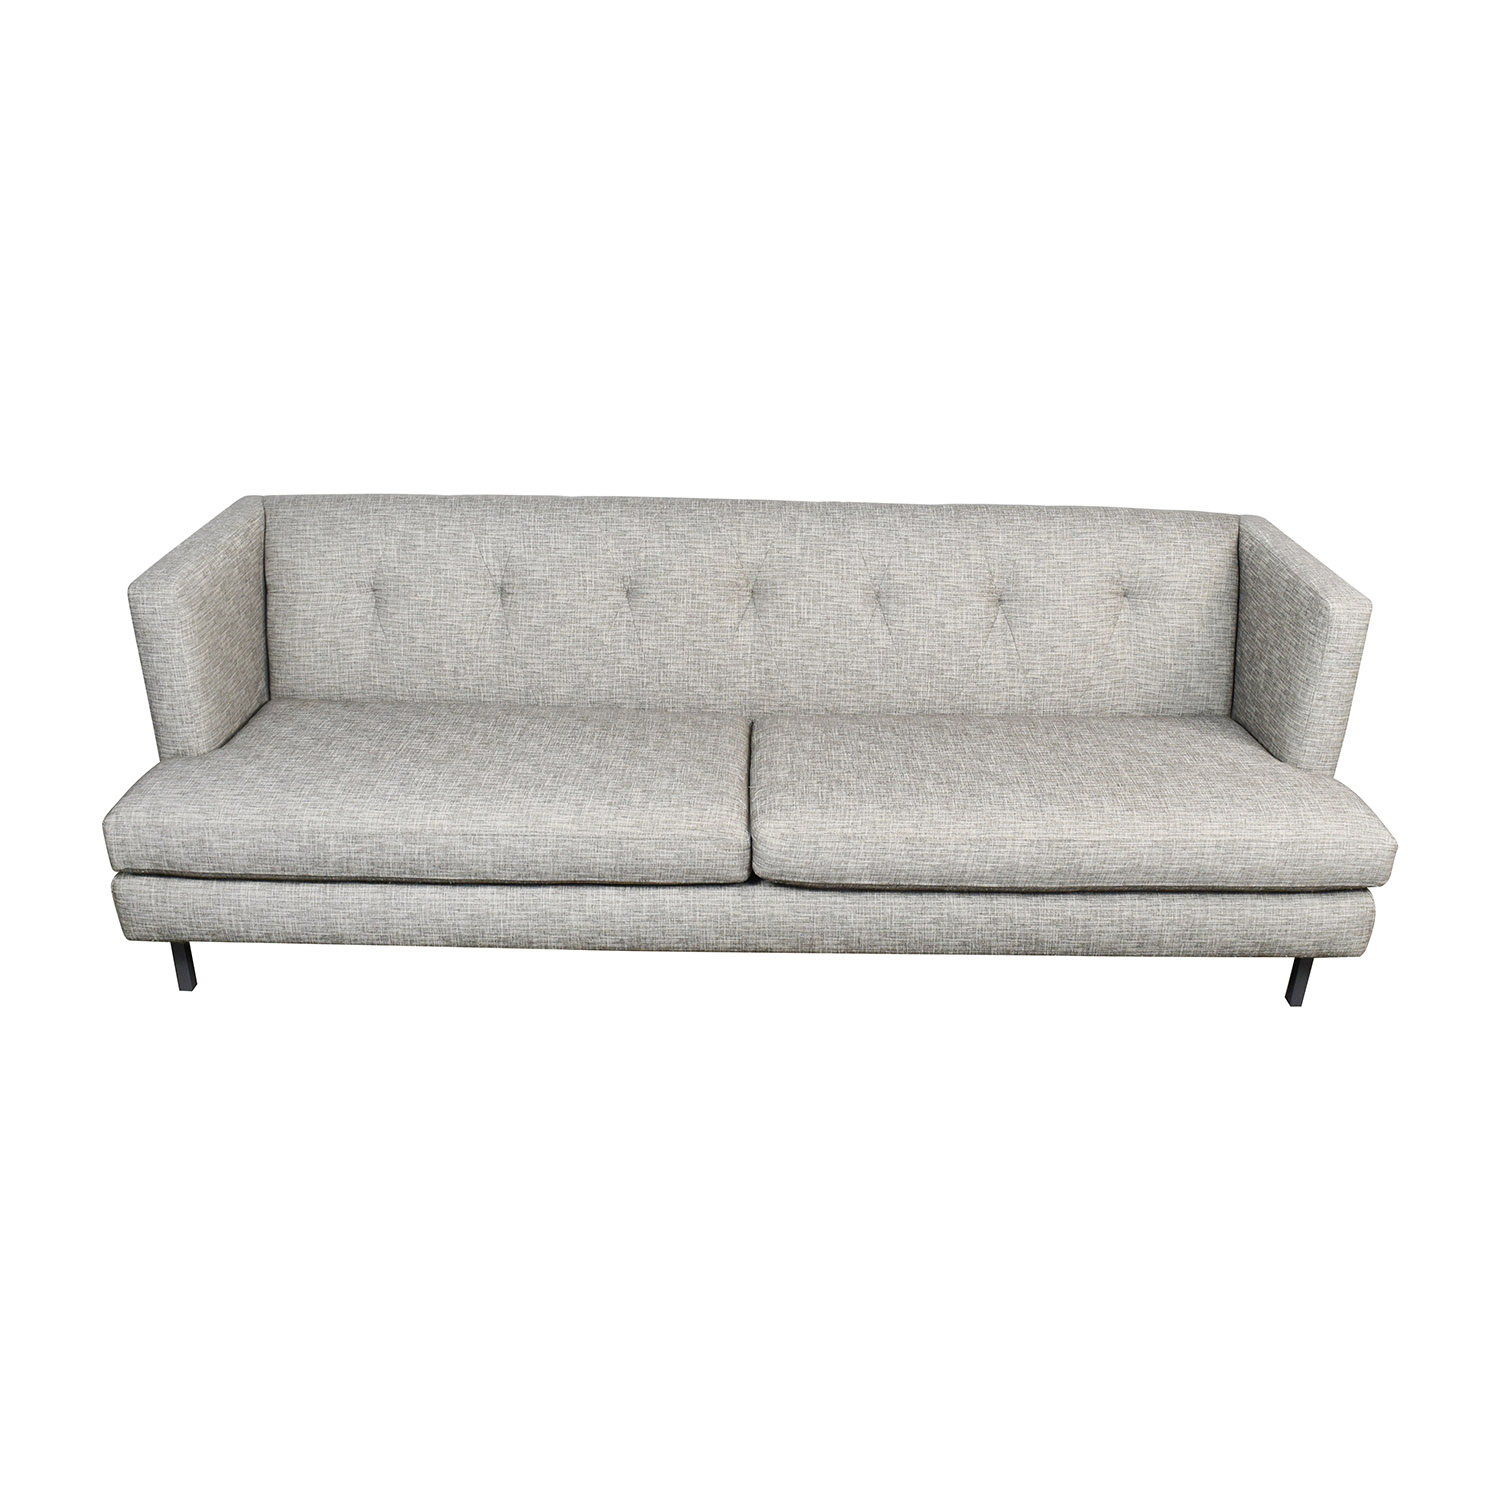 Cb2 Sofa Bed Best Movie Salt And Pepper Queen Sleeper Sofa